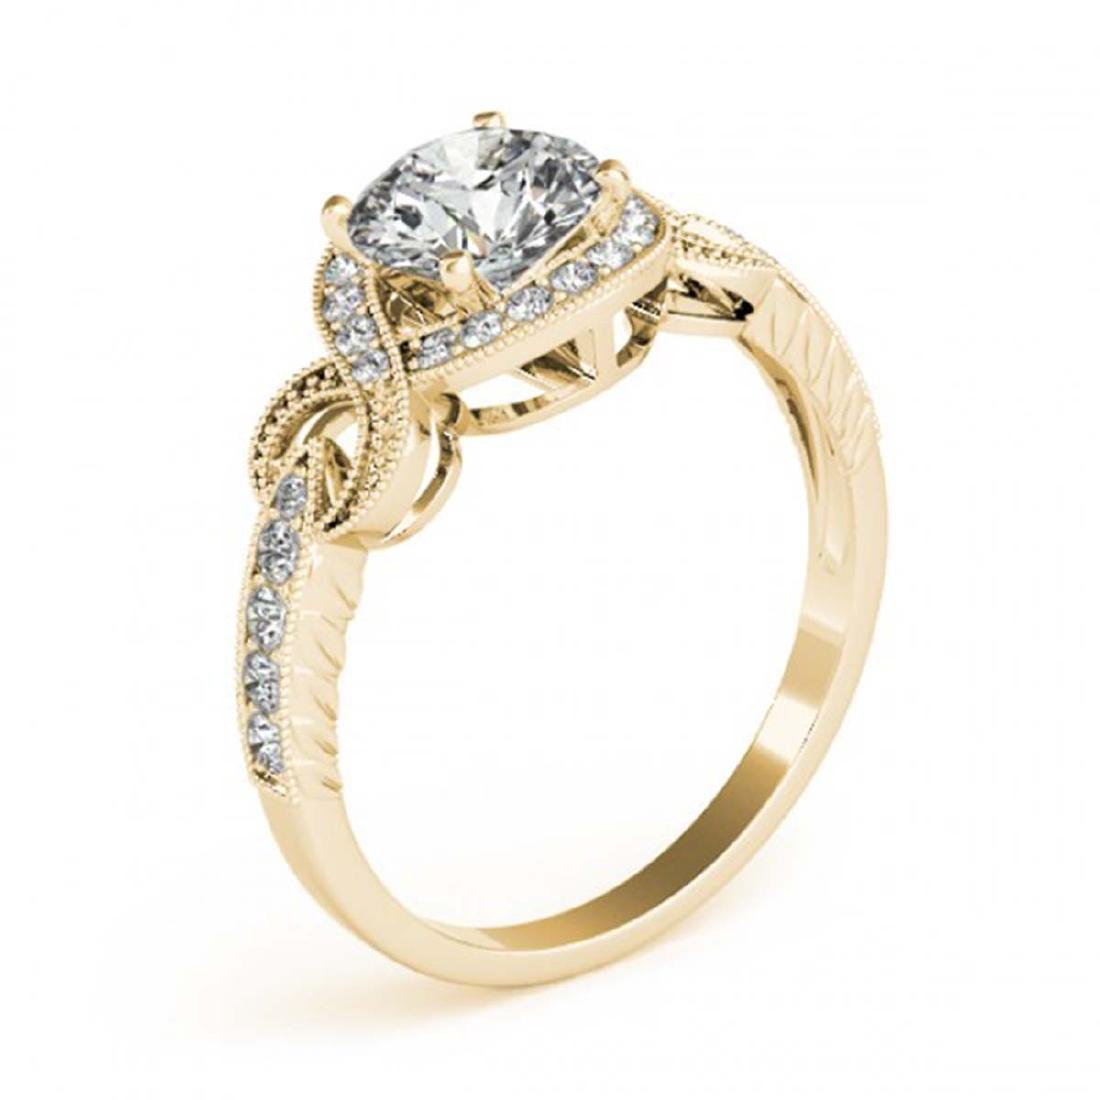 1.33 ctw VS/SI Diamond Halo Ring 18K Yellow Gold - - 3